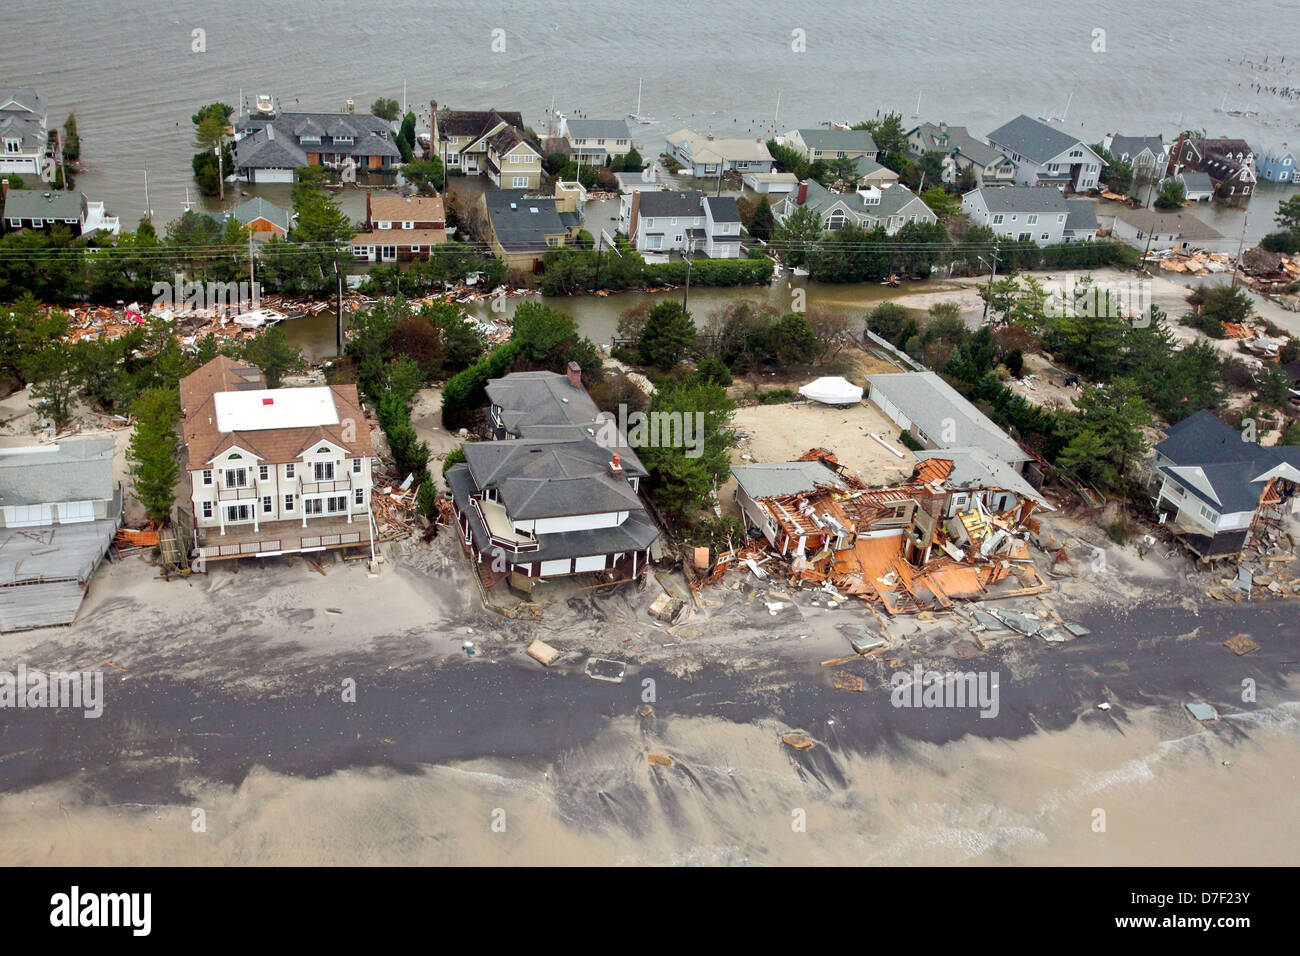 Aerial views of the damage caused by Hurricane Sandy to the New Jersey coast October 30, 2012. - Stock Image